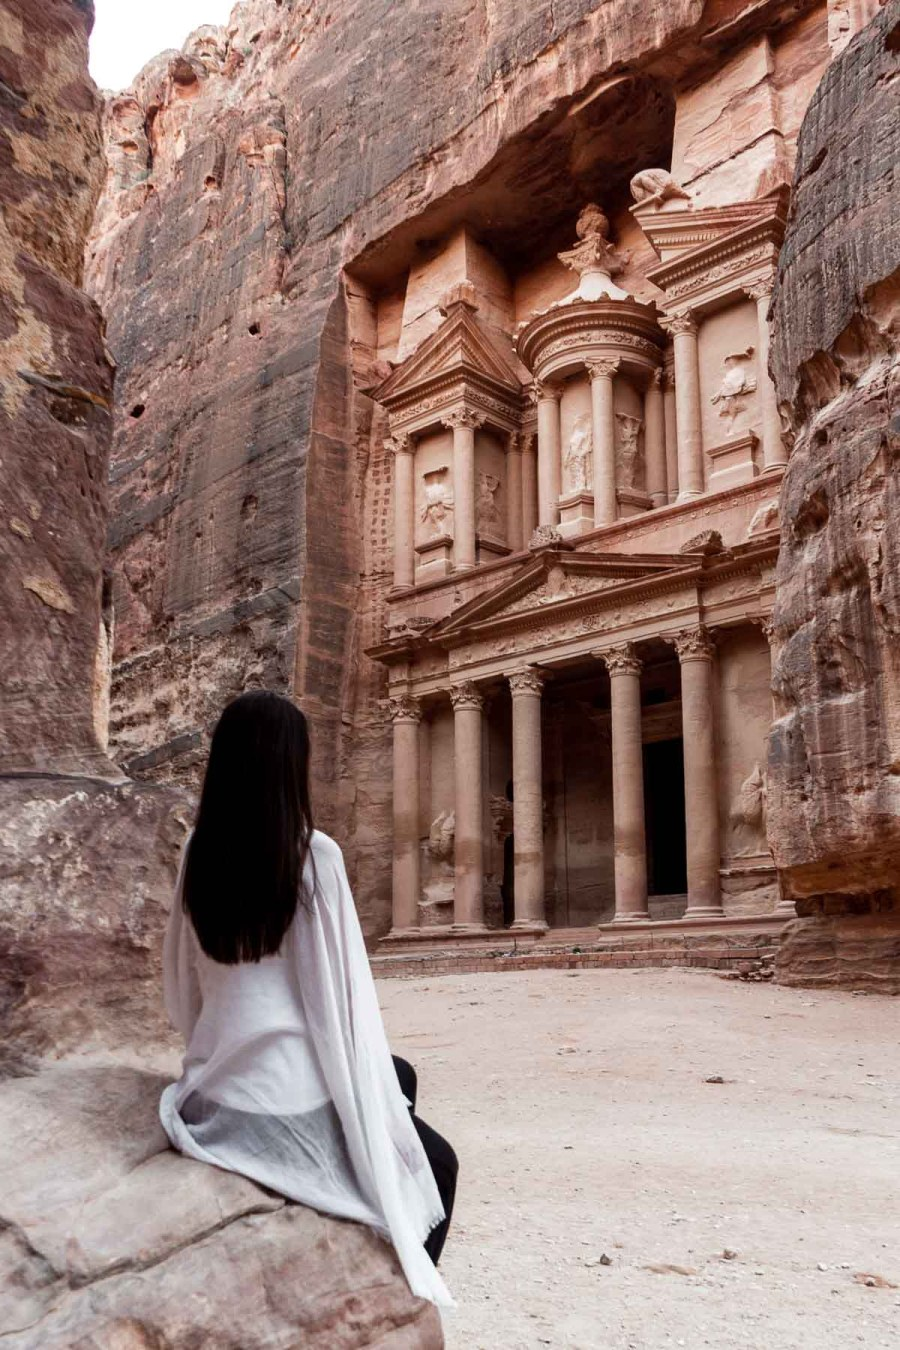 Girl in a white scarf looking at the Treasury in Petra, Jordan